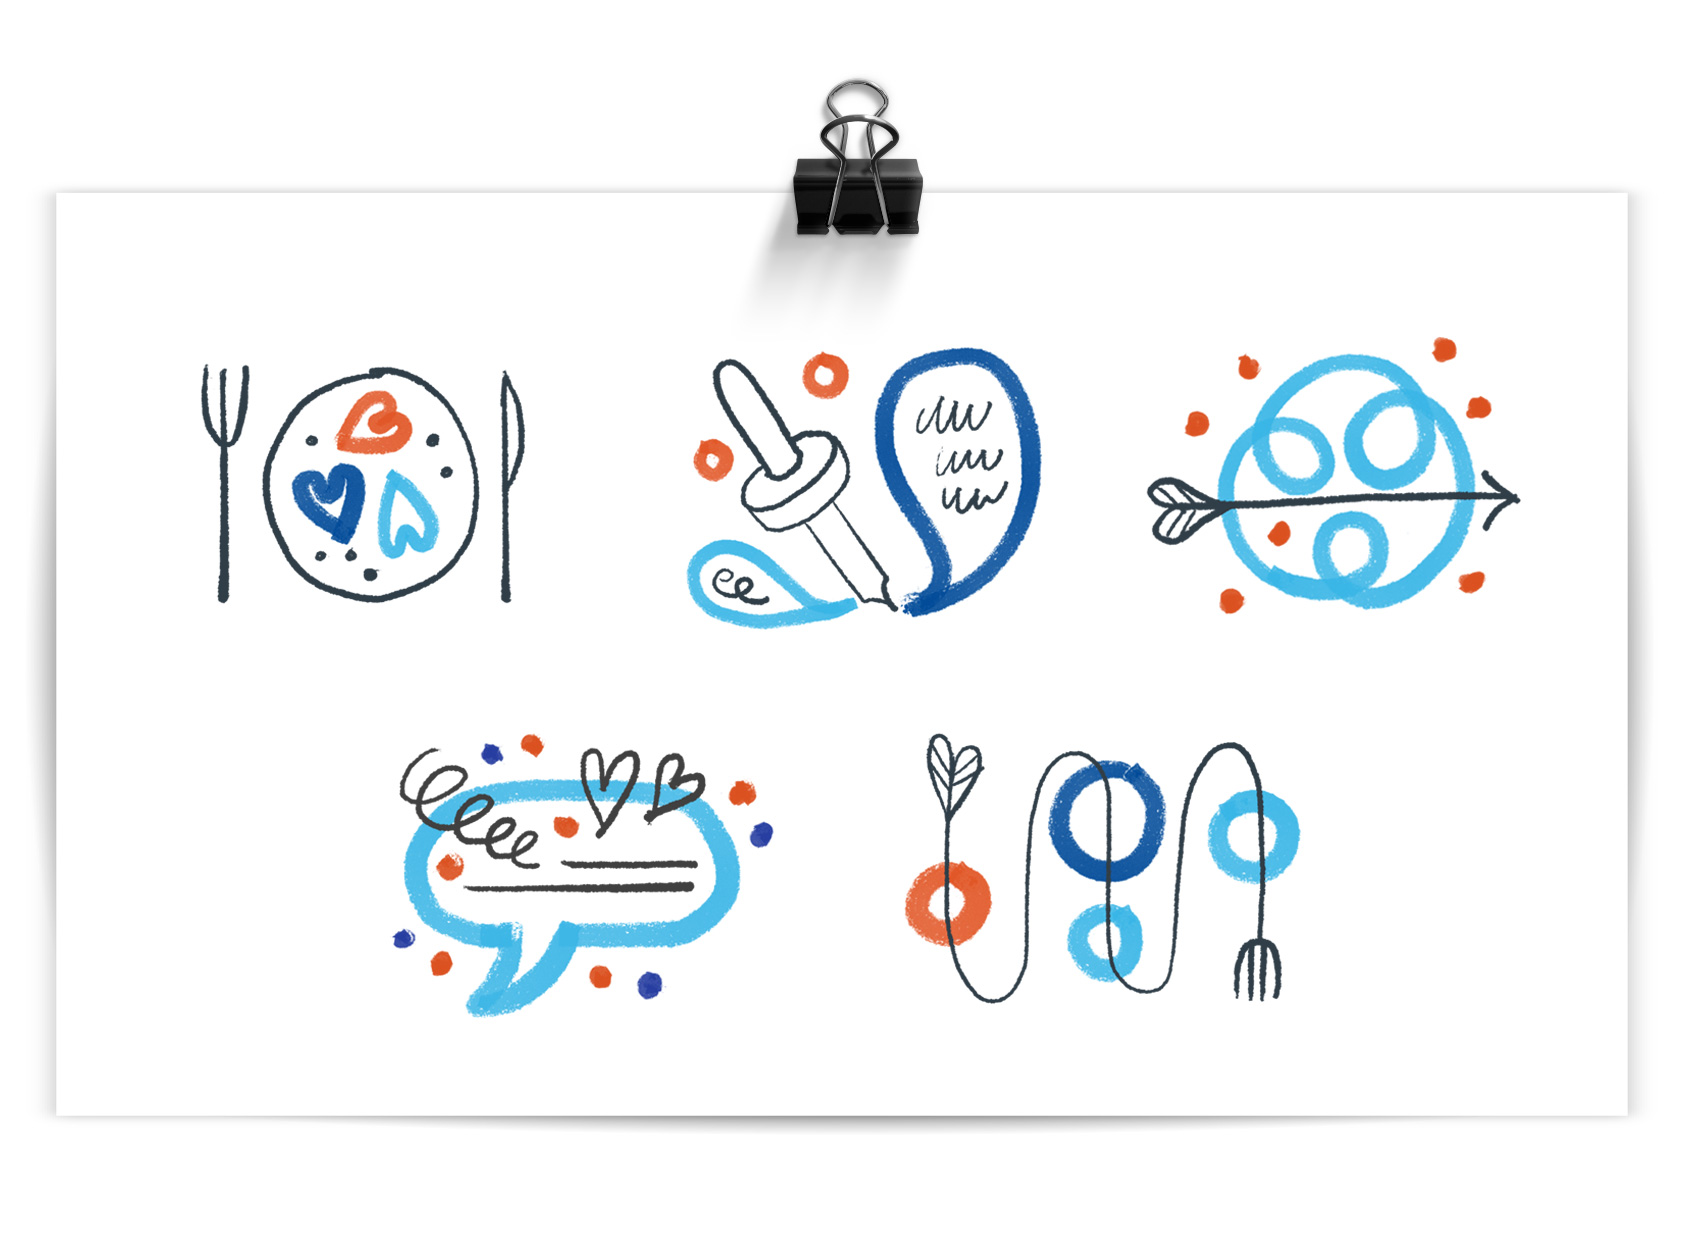 Program icons of: plate of hearts, eye dropper conversations, arrow through chaos, conversation bubble support, winding fork path.